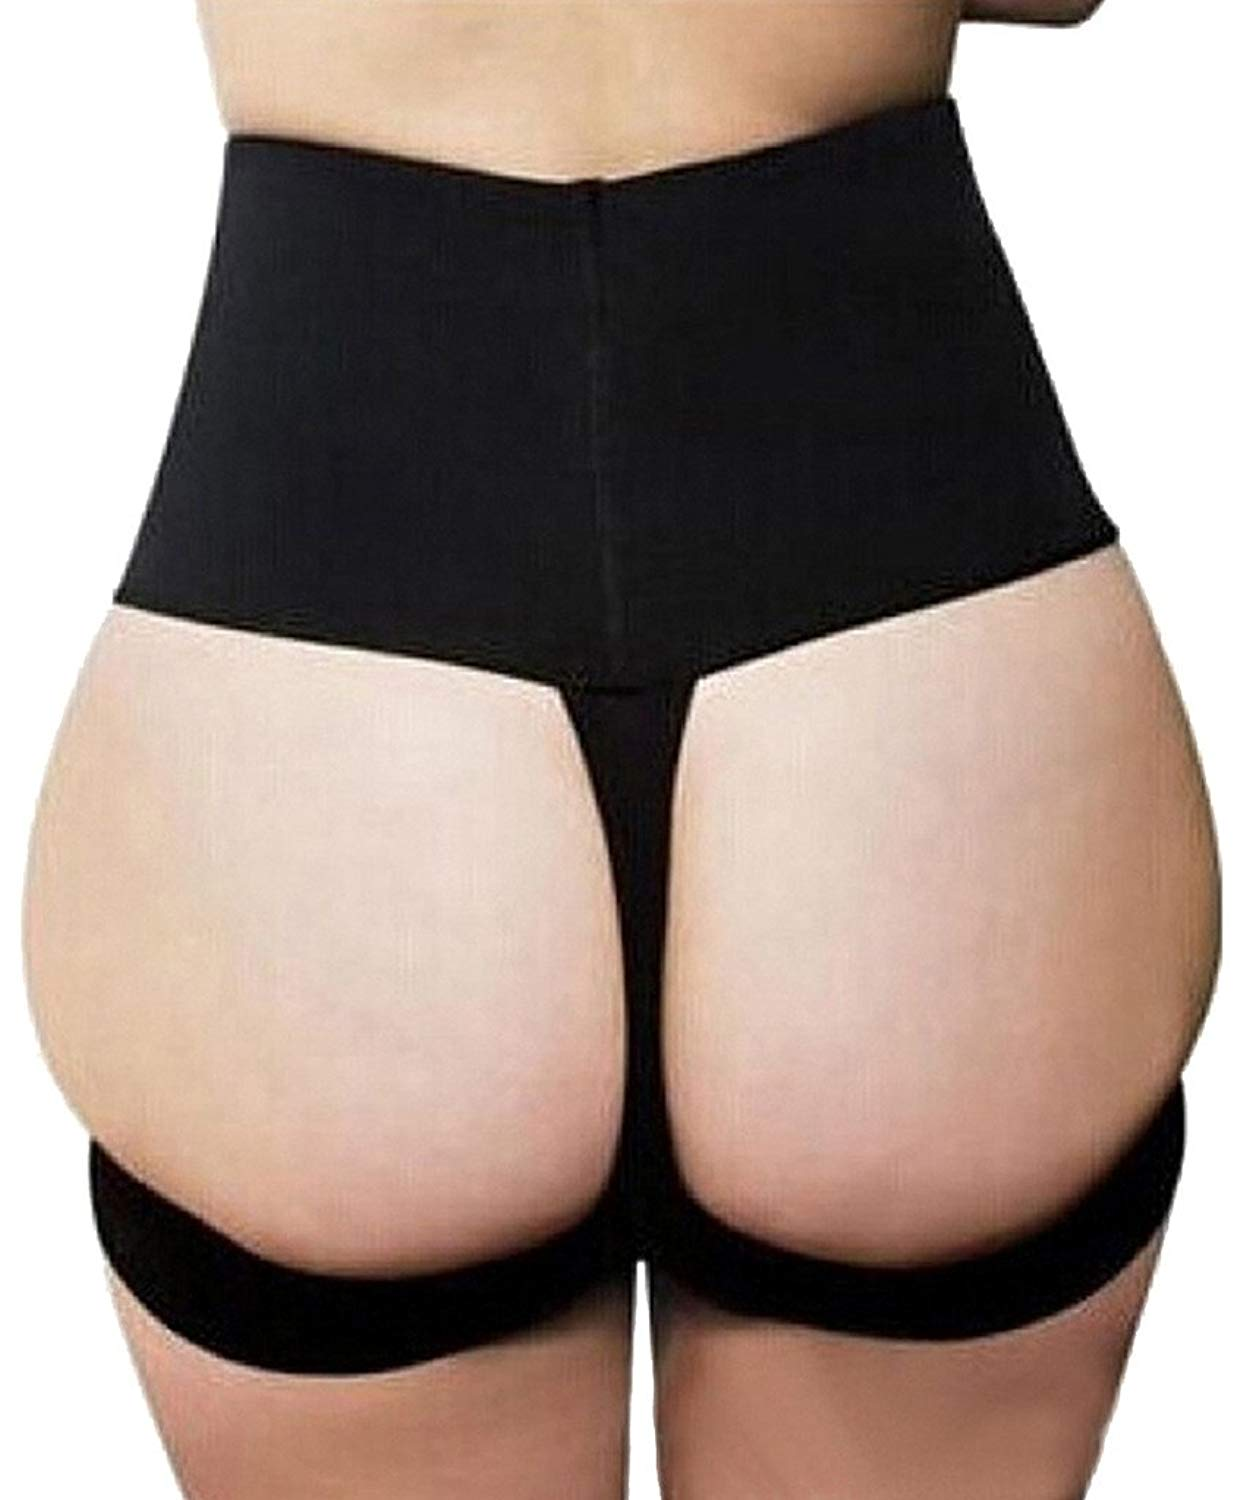 bddbc0852a807 Get Quotations · FUT Women Shapewear Butt Lifter Waist Cincher Boy Short Tummy  Control Panty